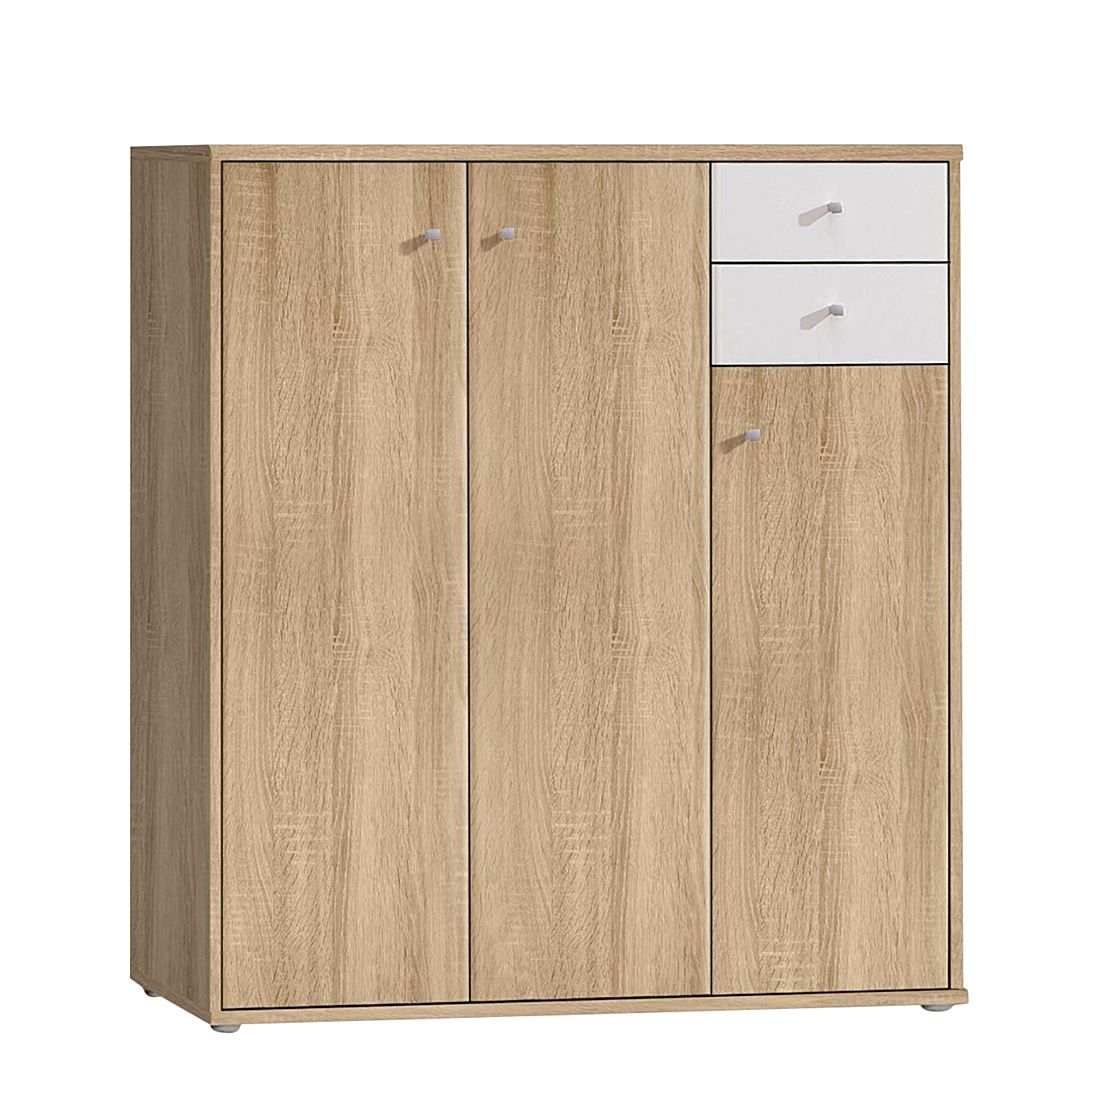 kommode baseline iii sonoma eiche dekor wei schrank. Black Bedroom Furniture Sets. Home Design Ideas